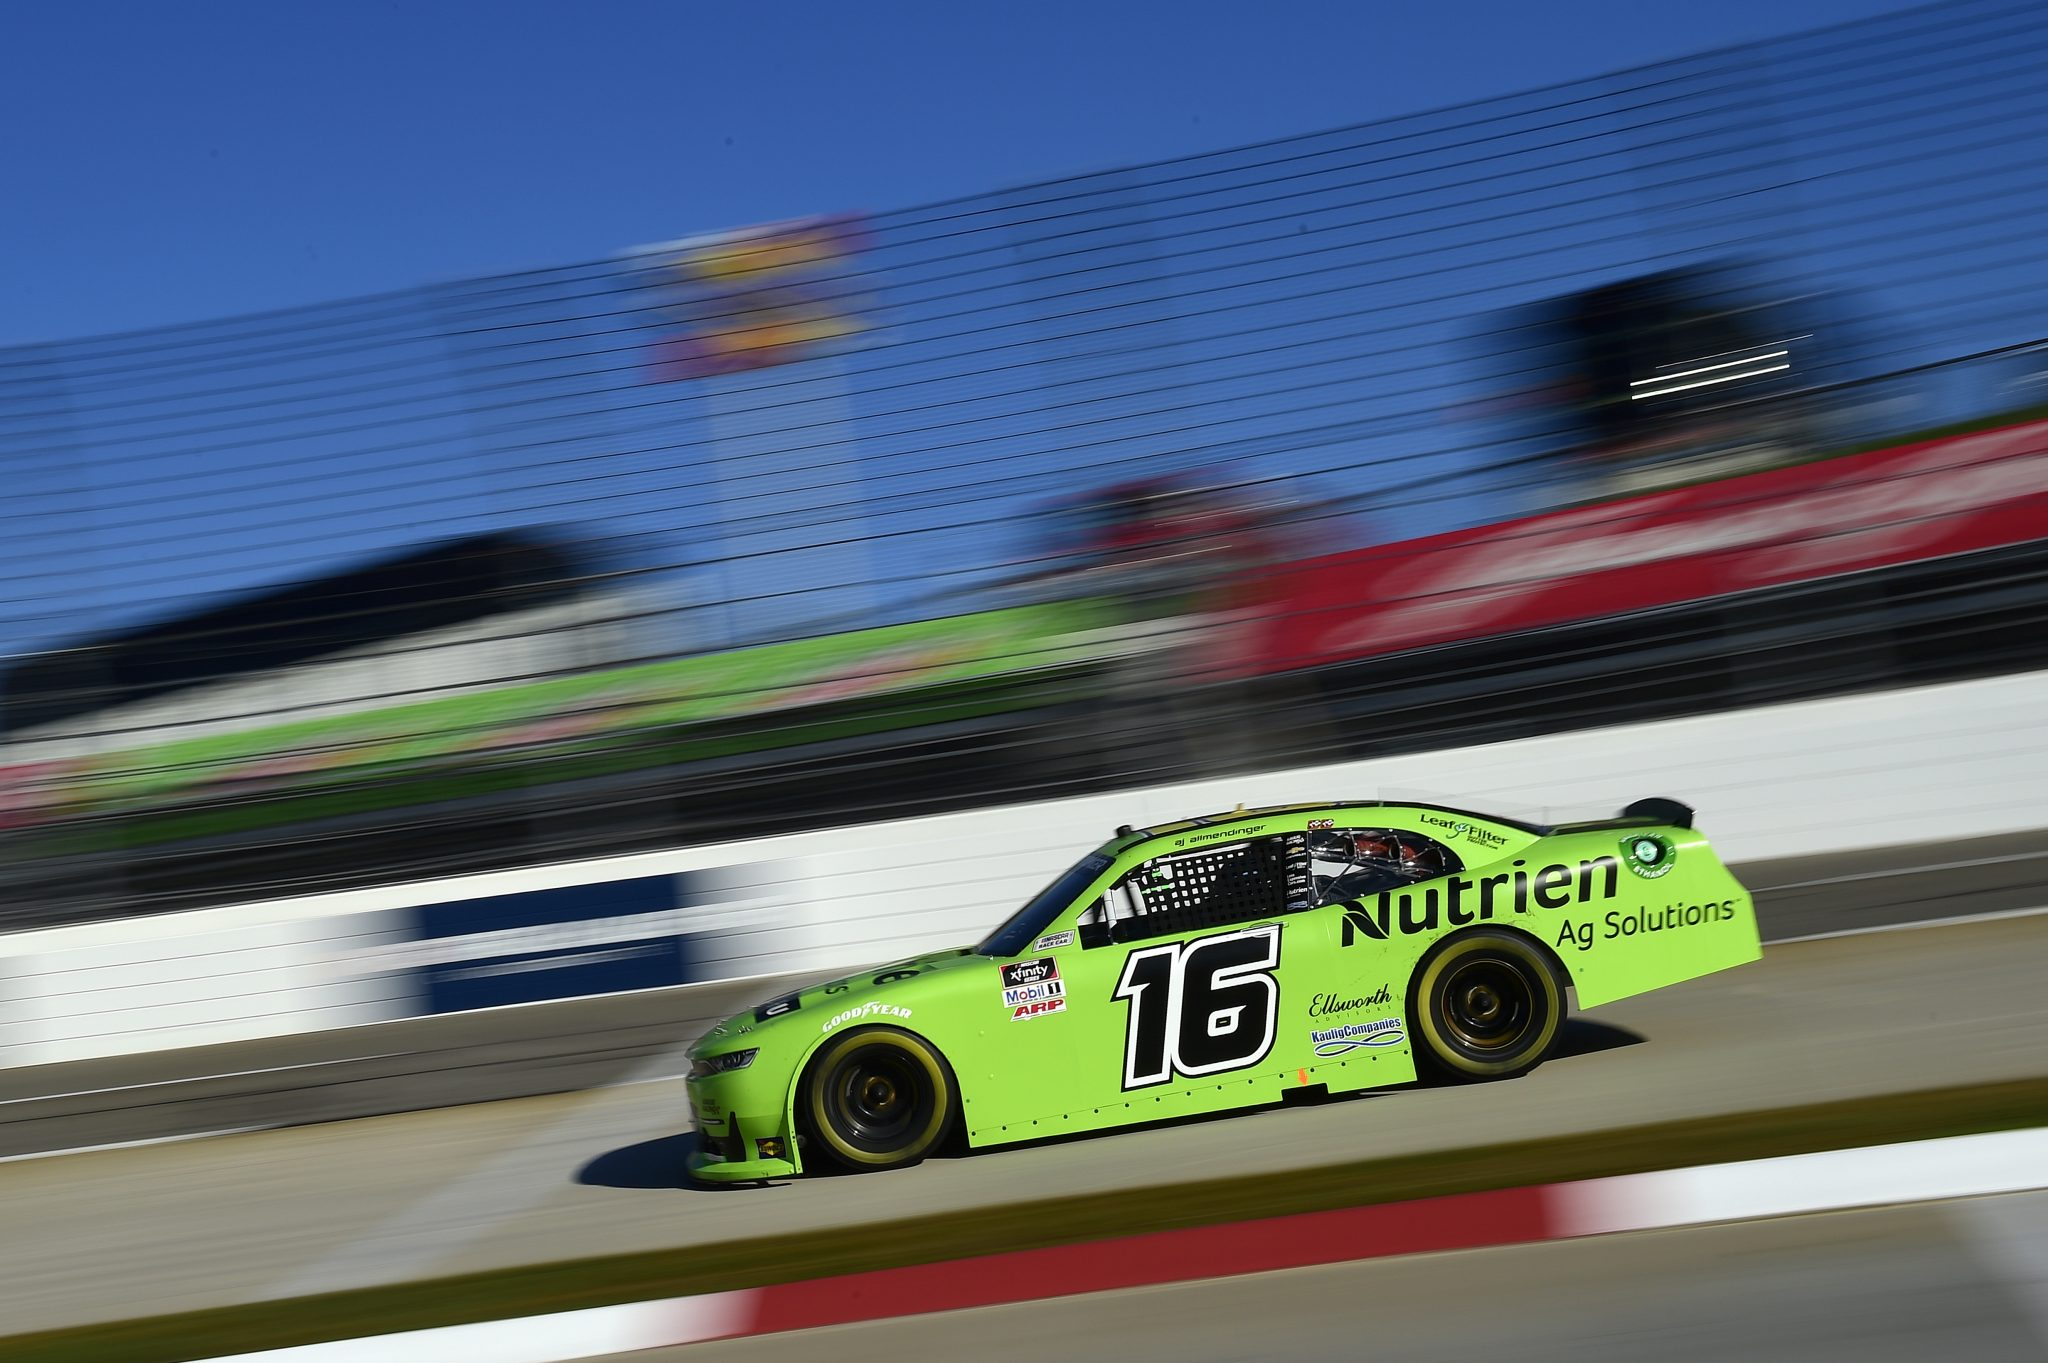 MARTINSVILLE, VIRGINIA - OCTOBER 31: AJ Allmendinger, driver of the #16 Nutrien Ag Solutions Chevrolet, drives during the NASCAR Xfinity Series Draft Top 250 at Martinsville Speedway on October 31, 2020 in Martinsville, Virginia. (Photo by Jared C. Tilton/Getty Images) | Getty Images